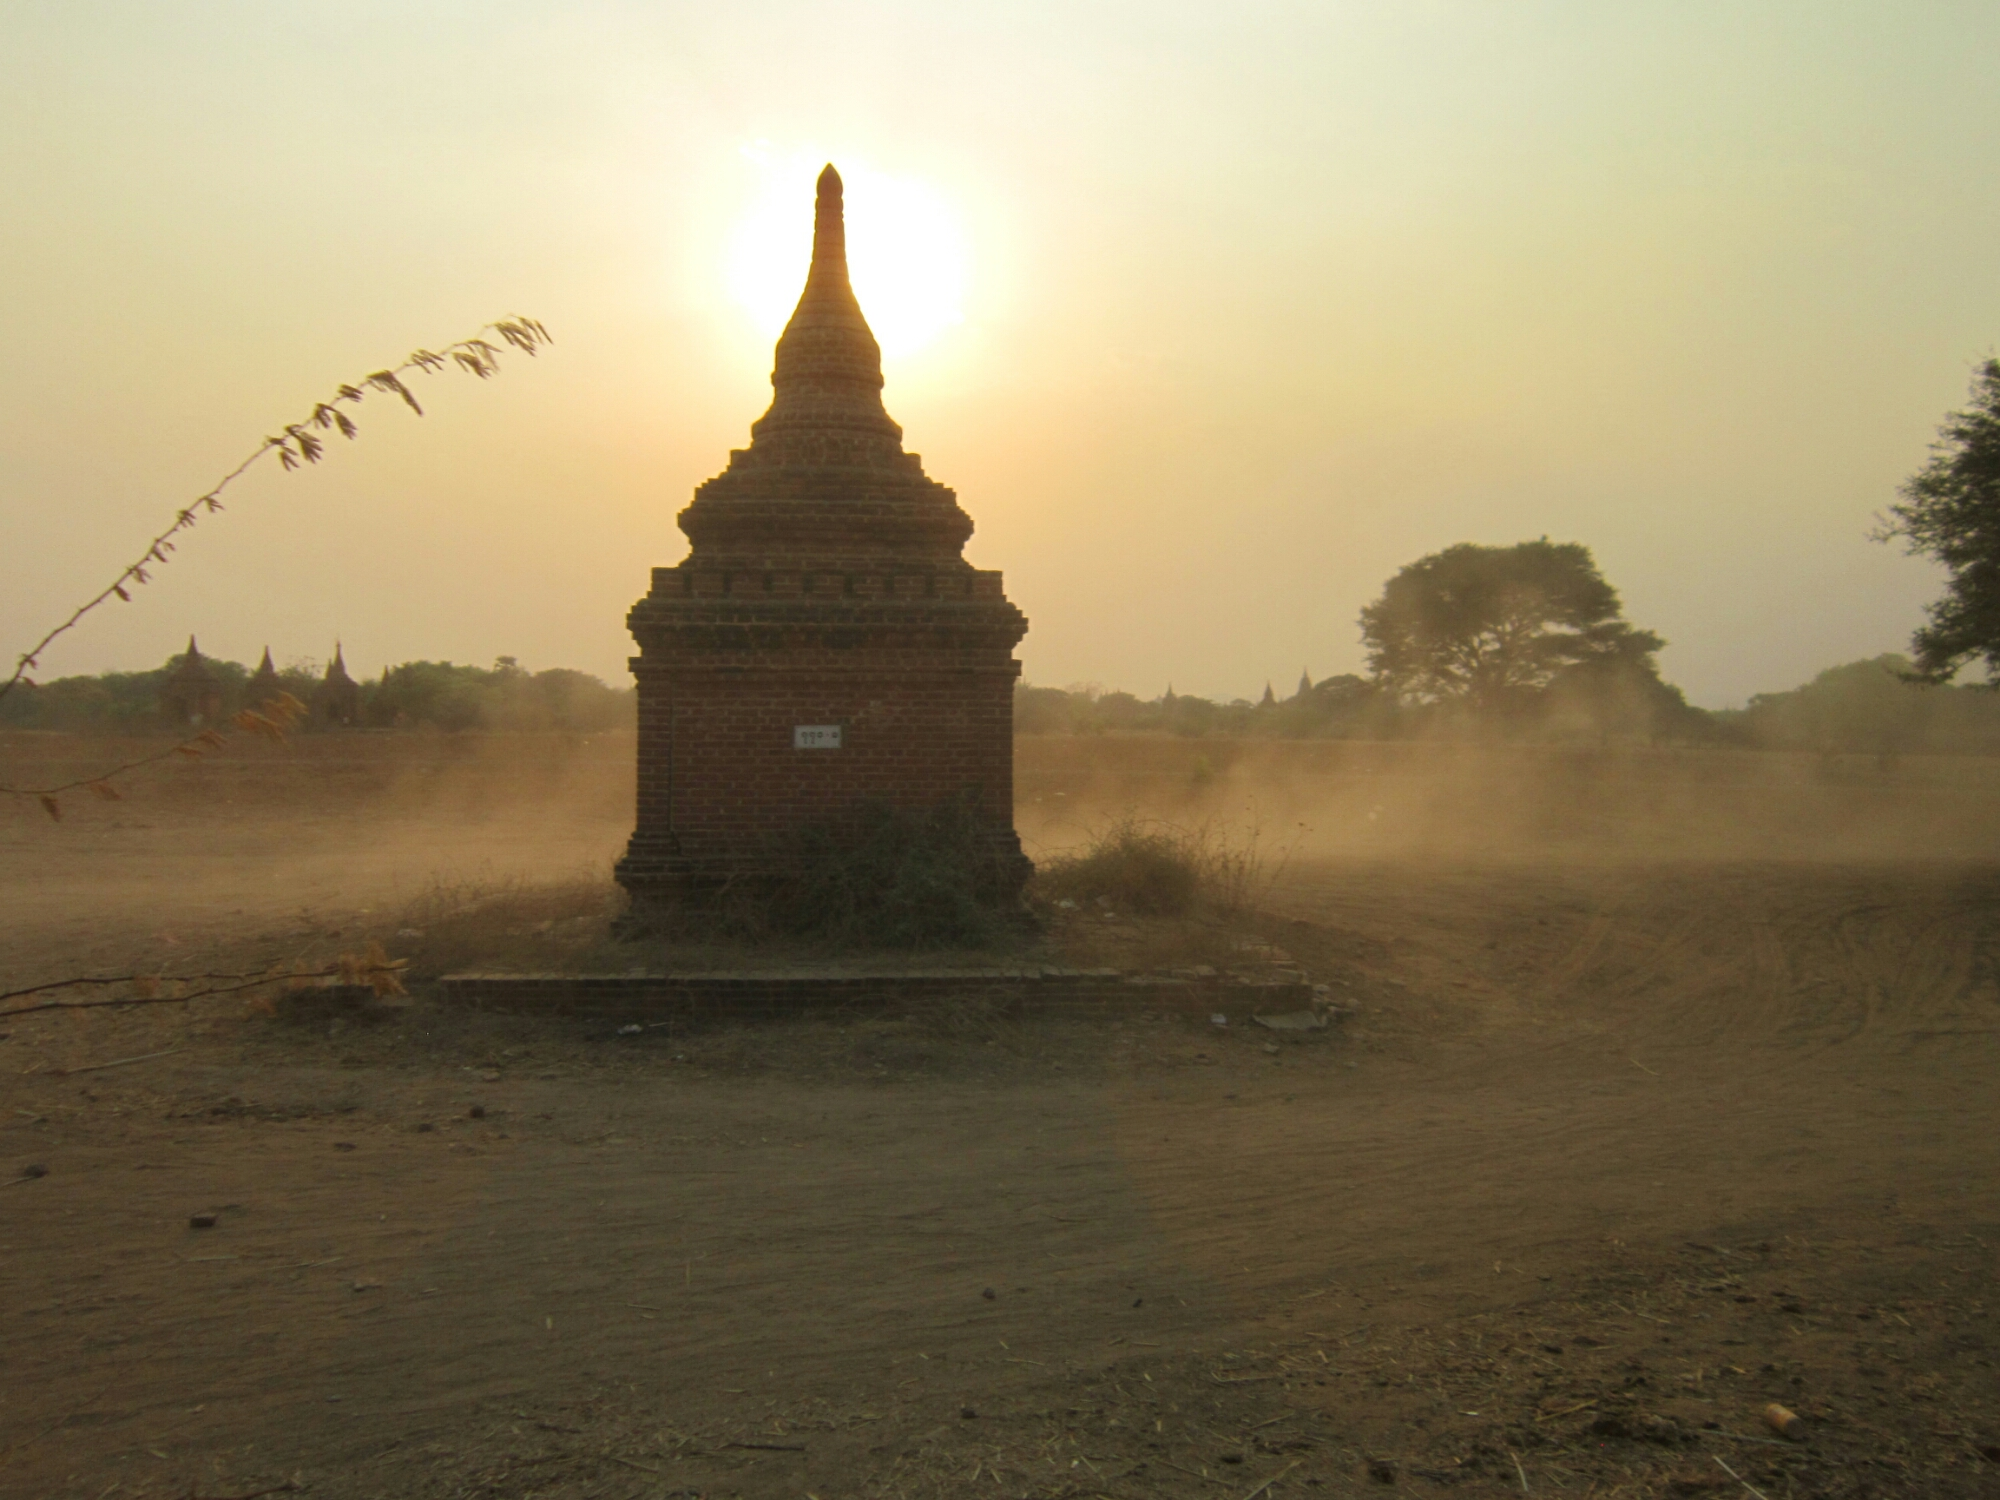 Dust surrounding a temple in Bagan